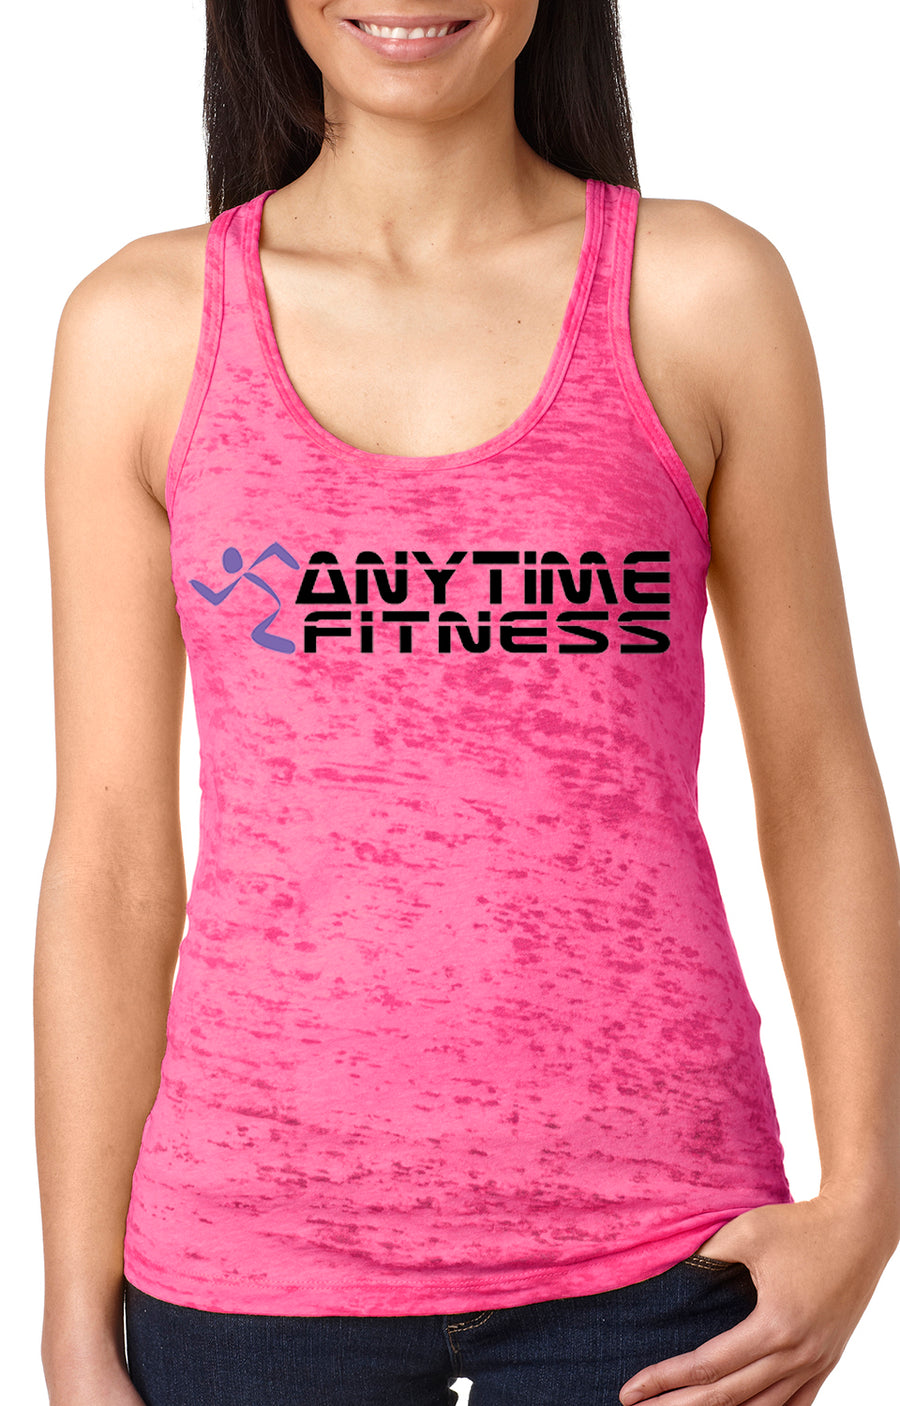 Anytime Fitness women's burnout racer back tank Pink